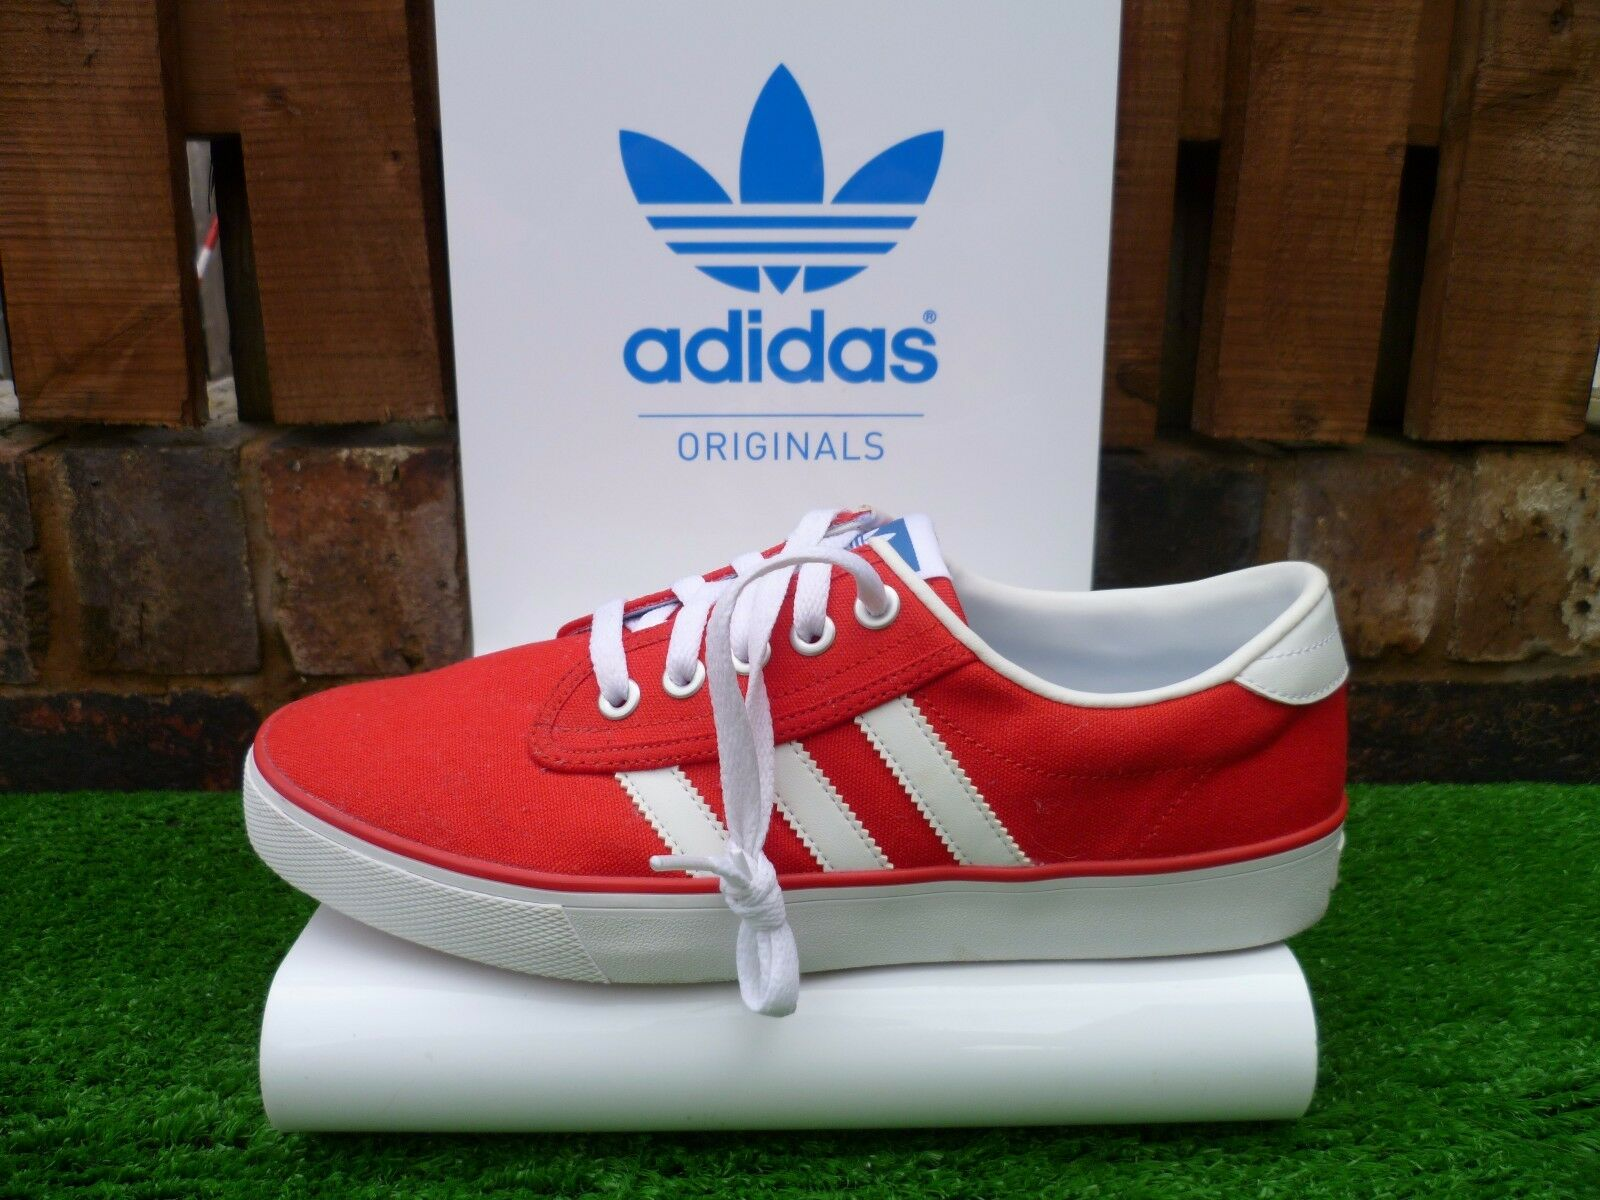 Adidas KEIL 80s casuals 2014 RED CANVAS VERSION VERY RARE LOOK!